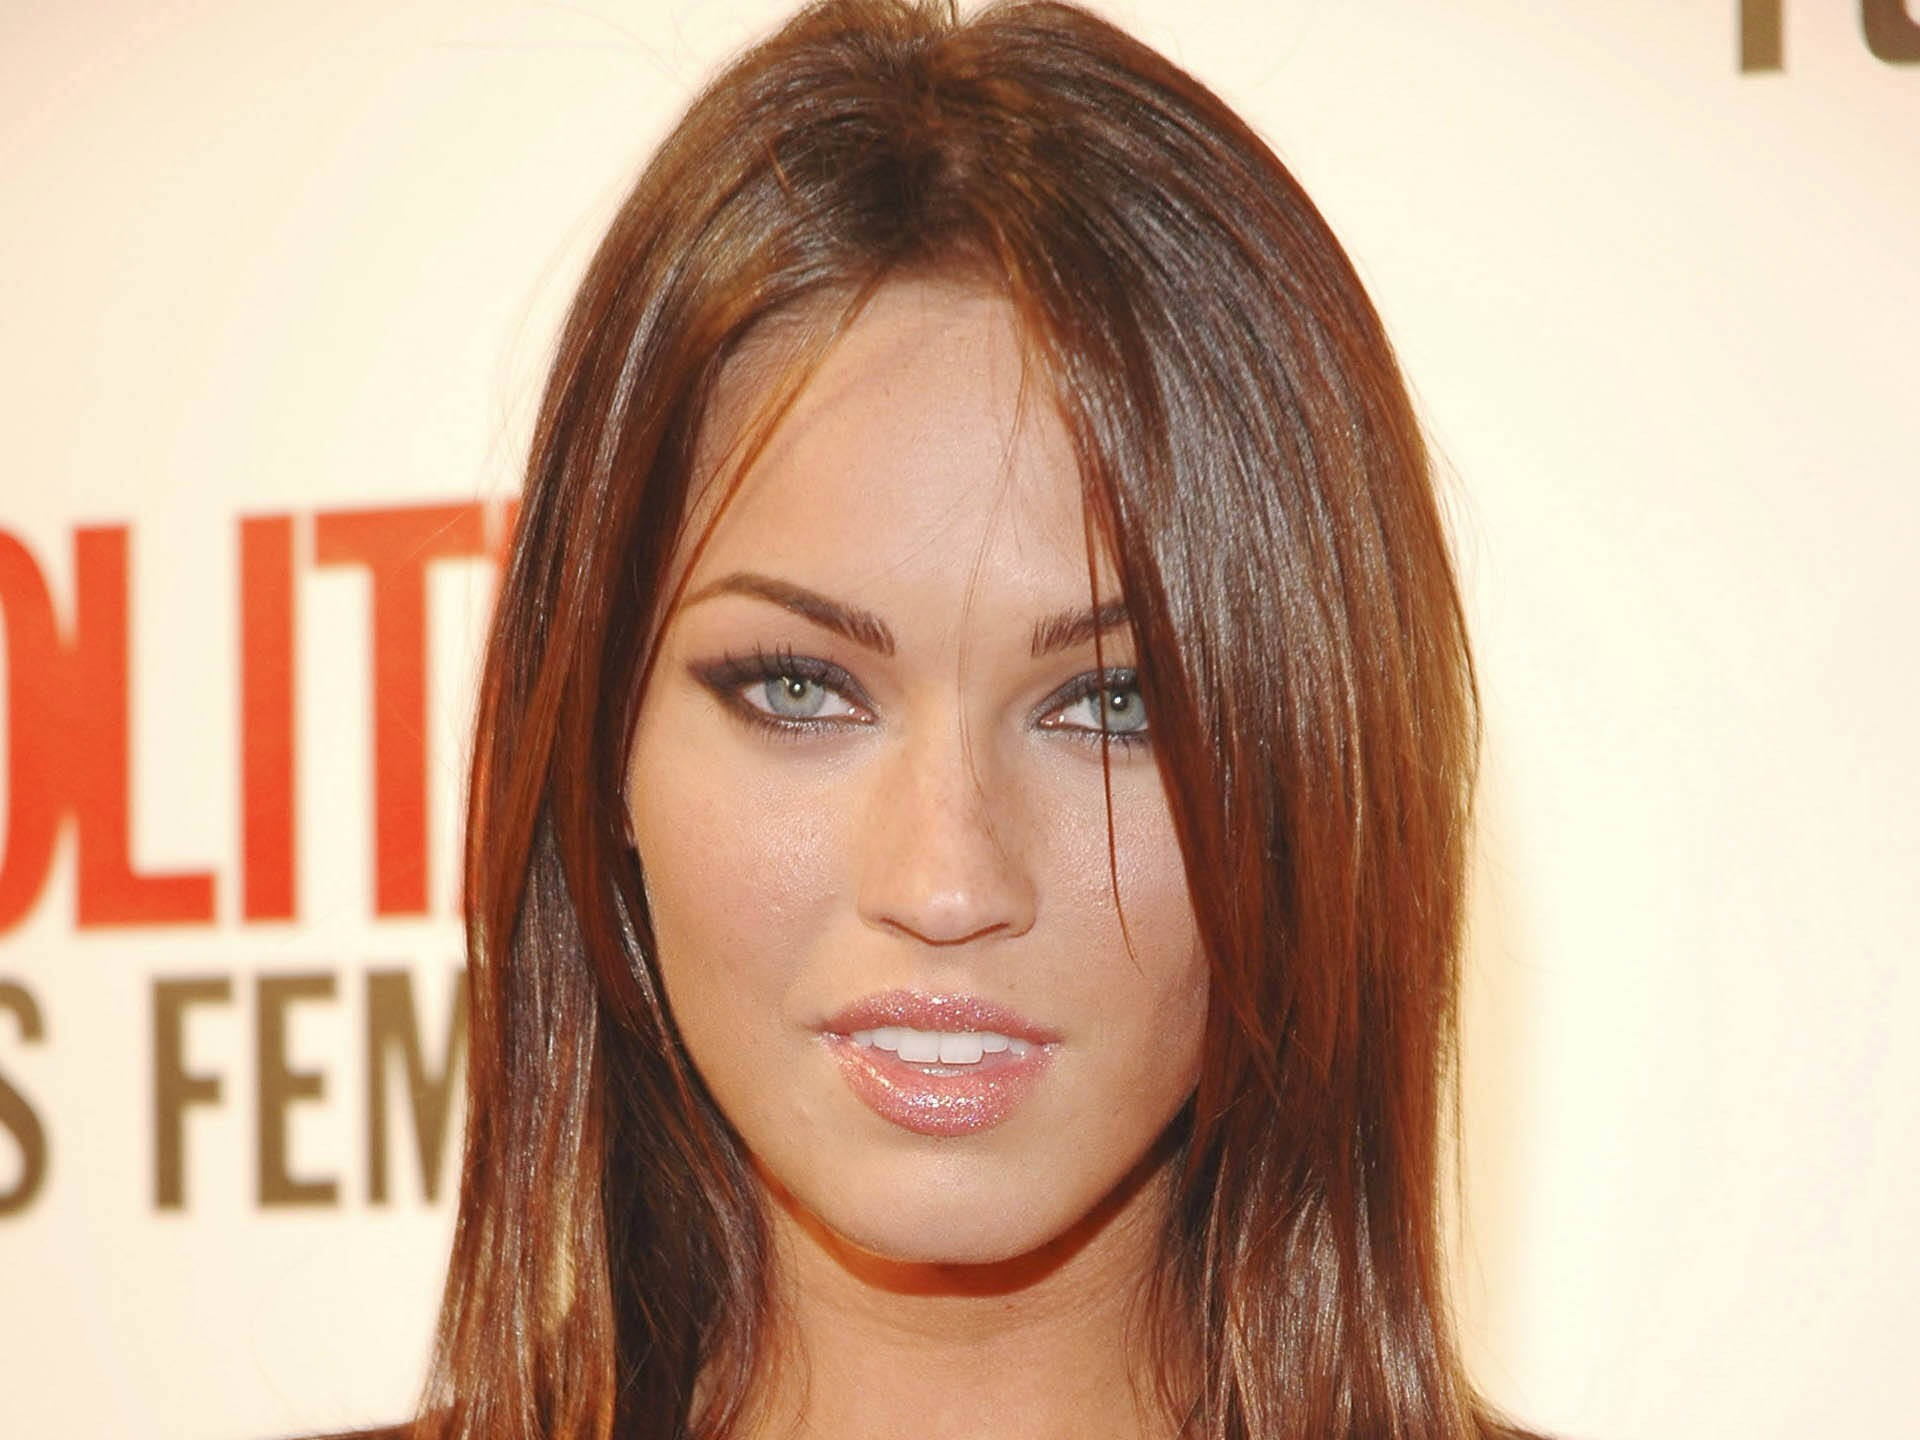 Megan Fox Actress Celebrity HD Wallpaper